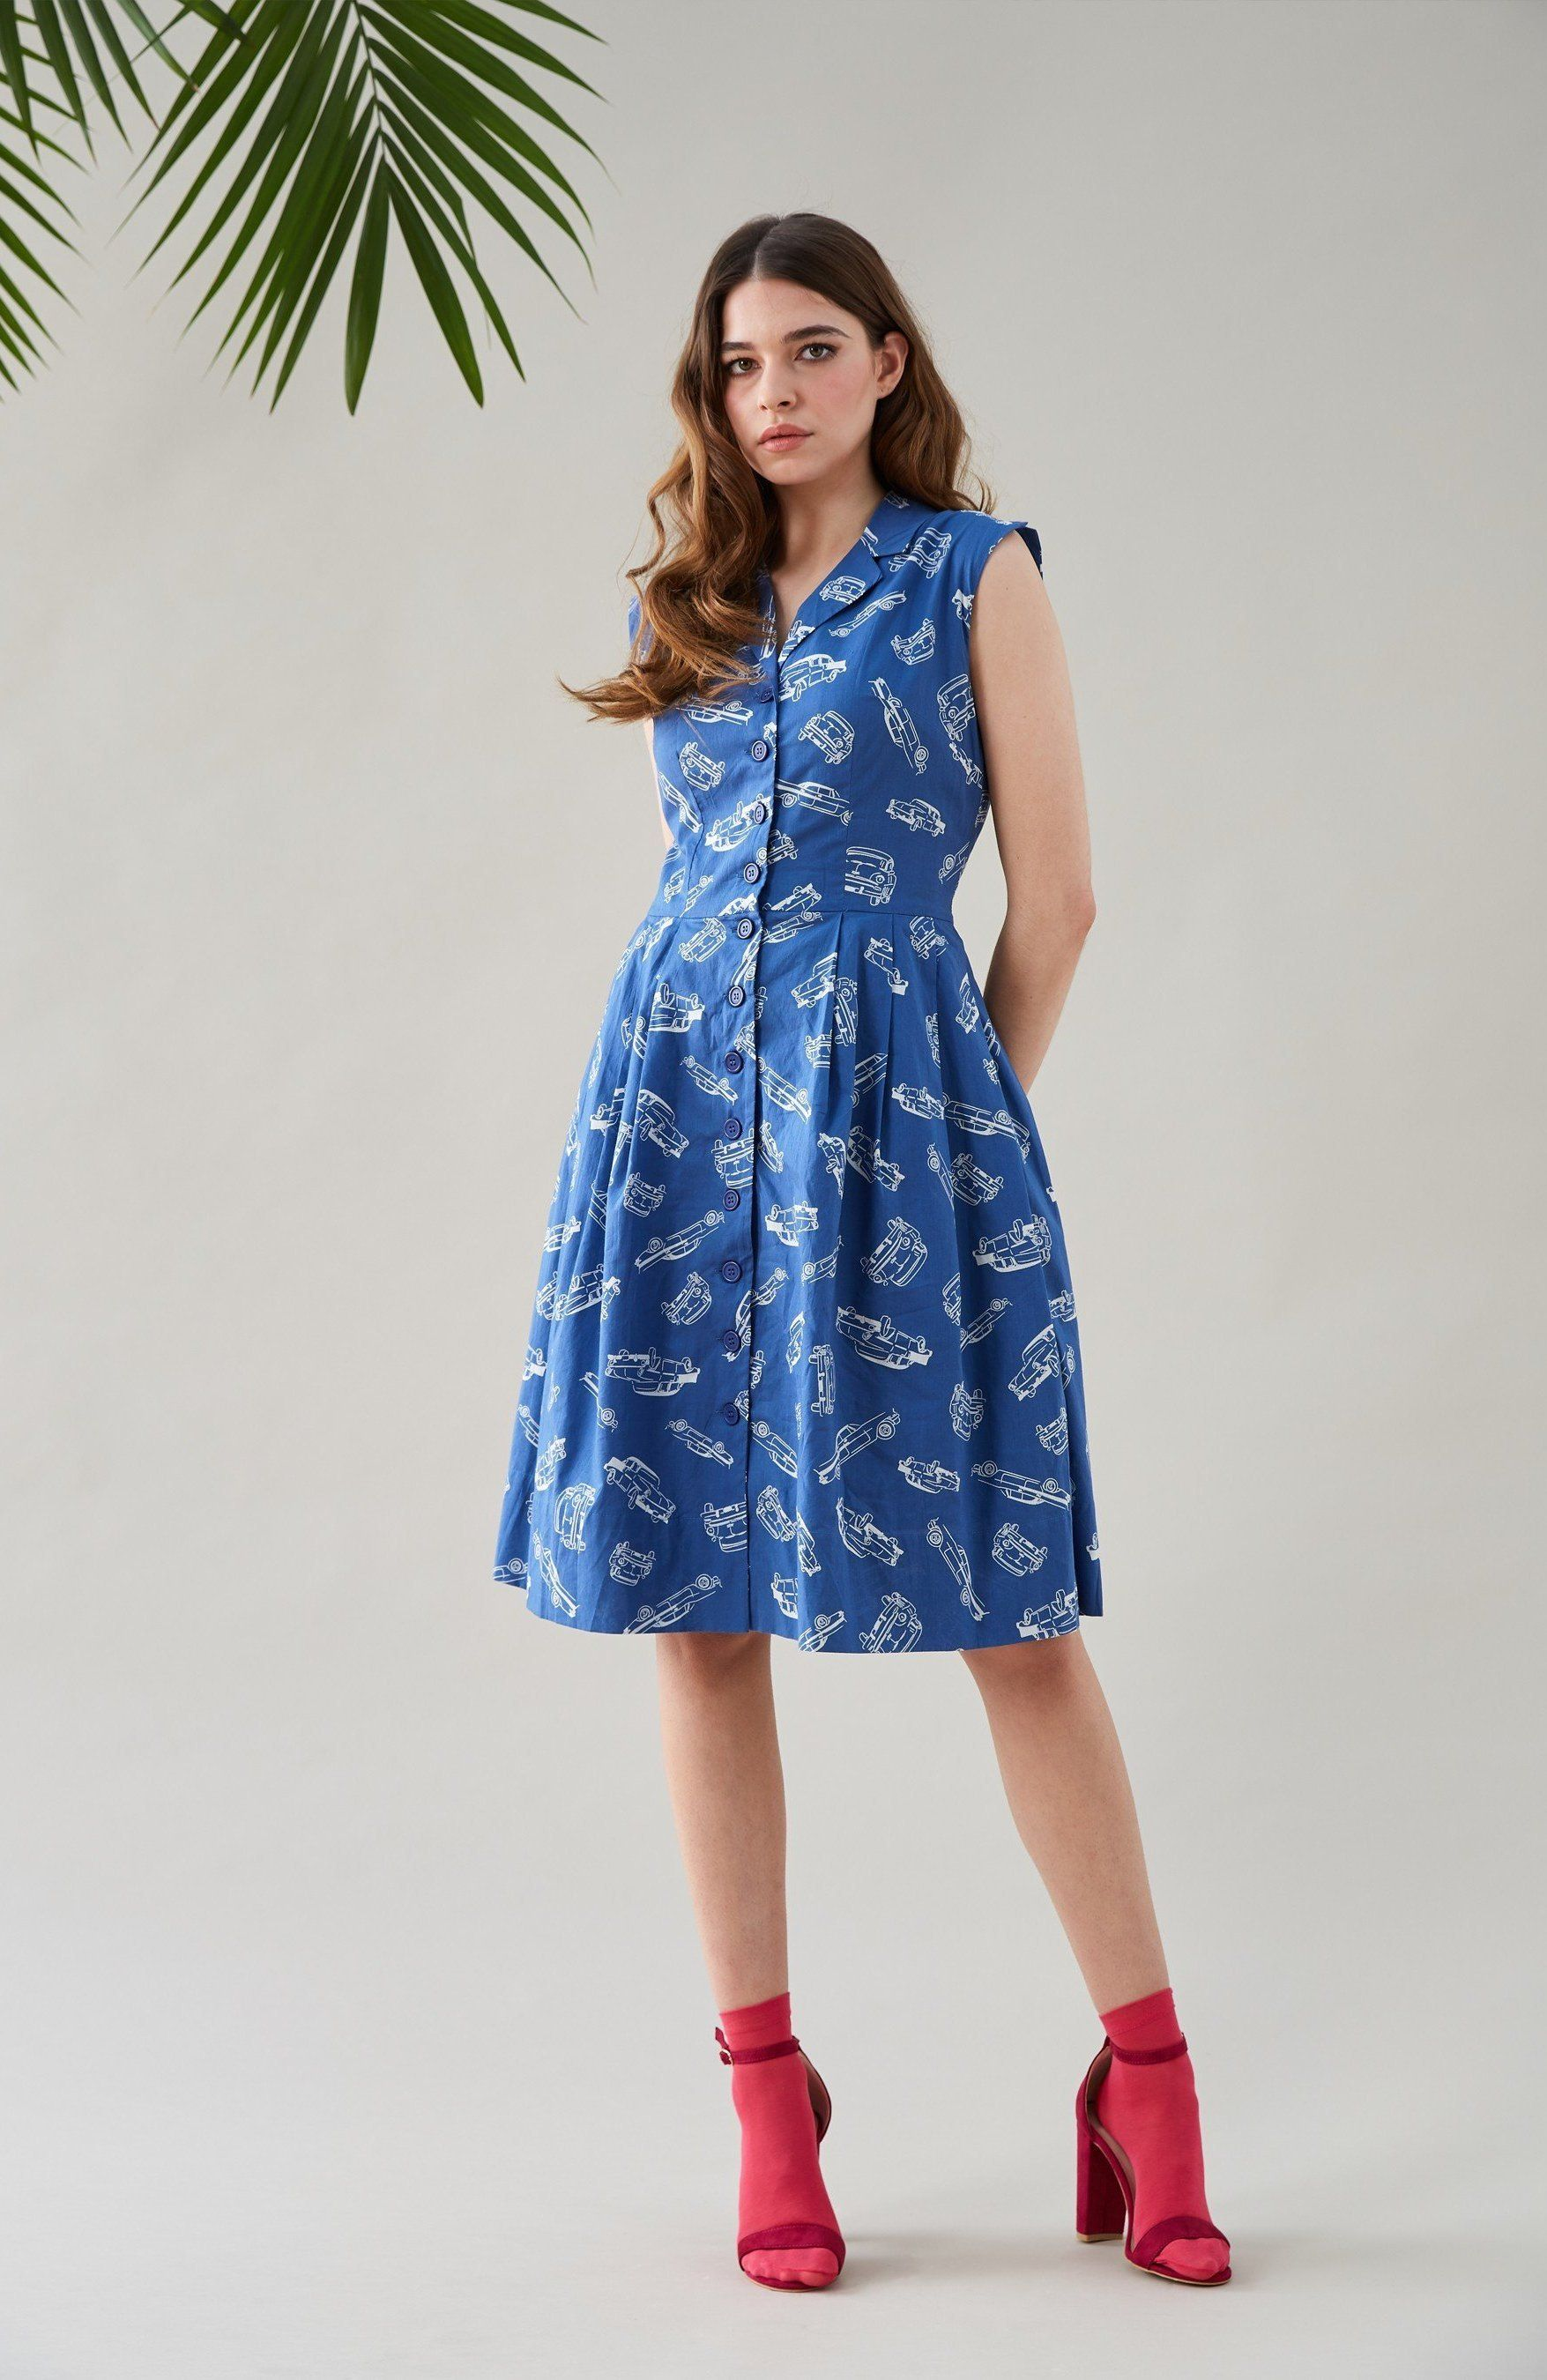 Emily And Fin Frankie Dress In Vintage Car Dresses Emily And Fin Printed Shirt Dress